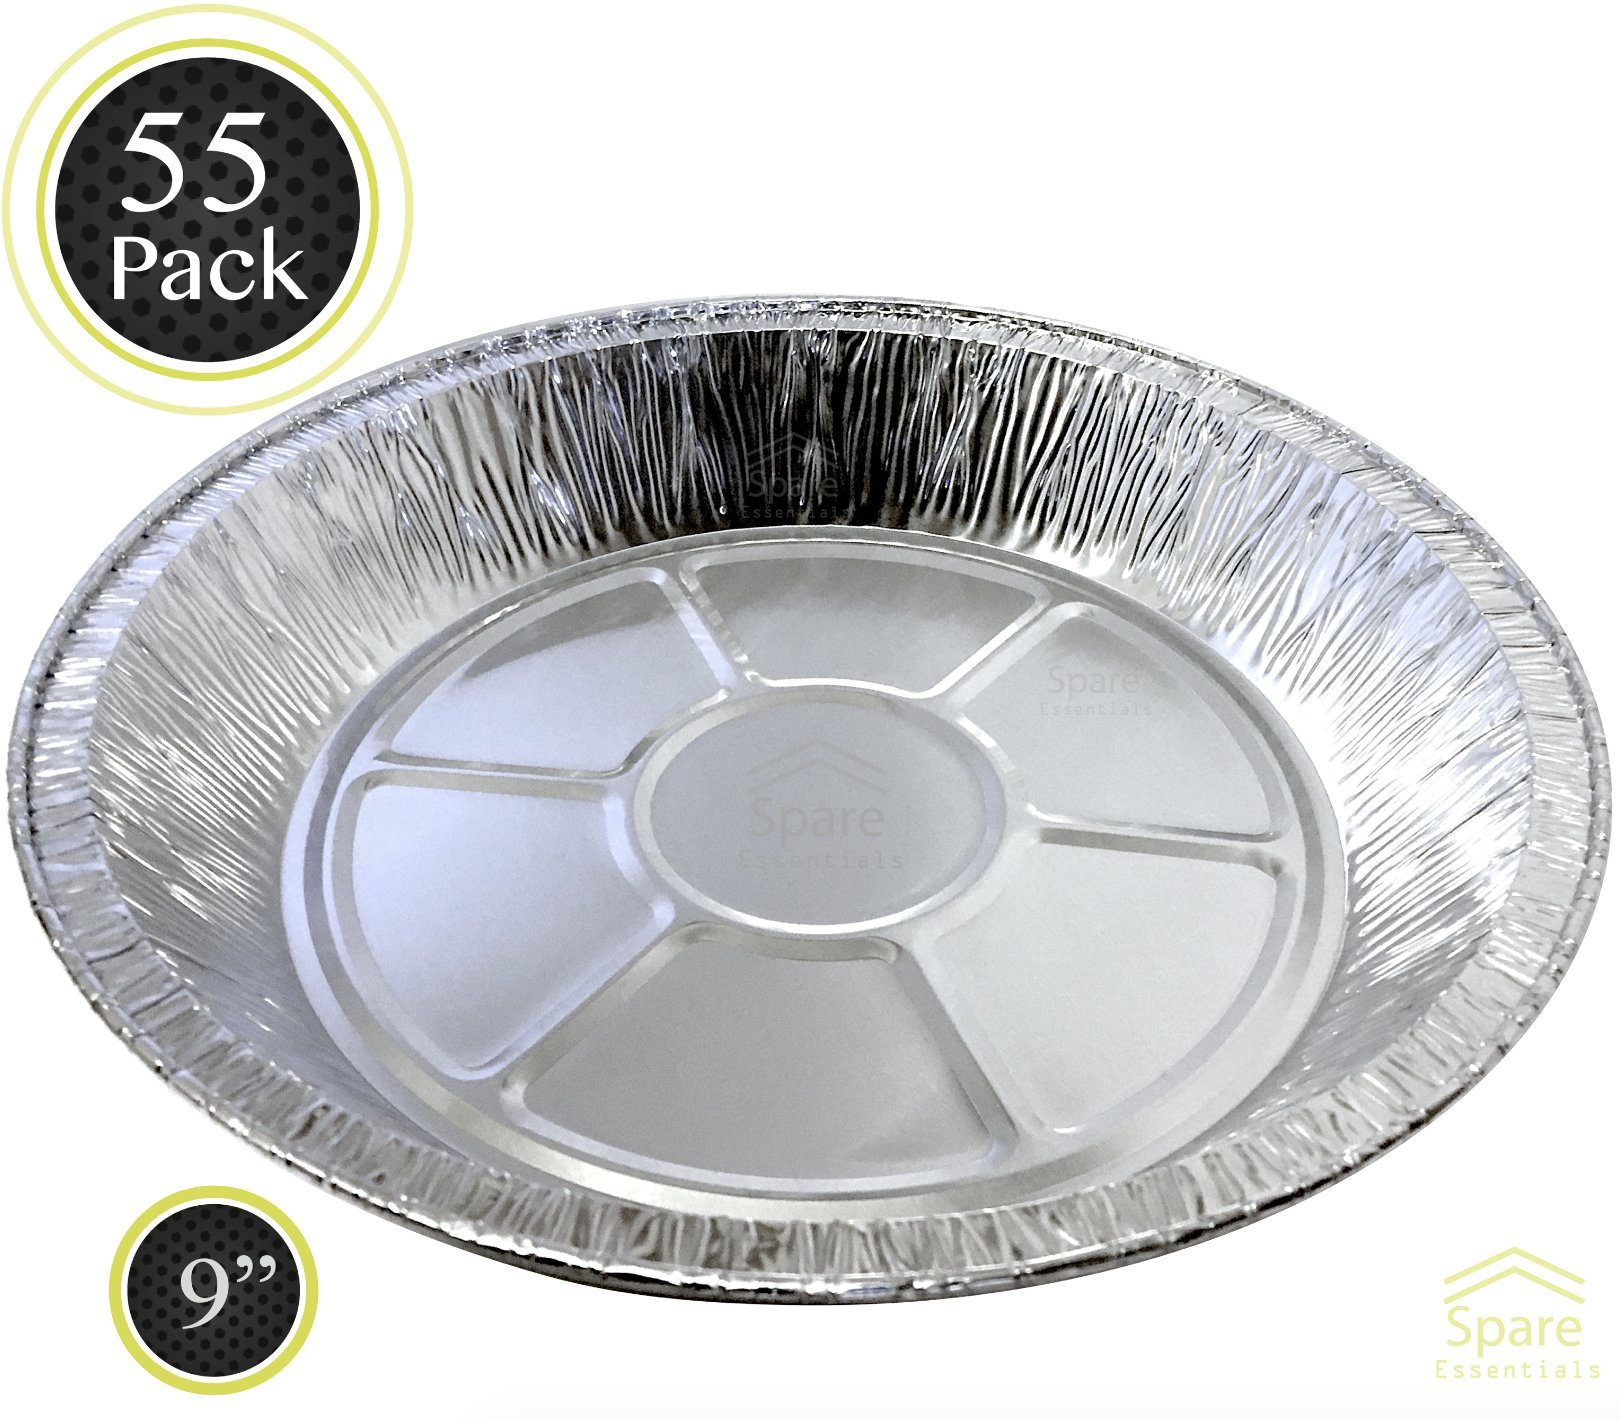 55 PACK - Prime Pie Pans. Ideal for Tasteful Cakes and Pies. Sturdy Aluminum Foil Pans. Disposable Tin Plates for Tart / Pie – SIZE 9''